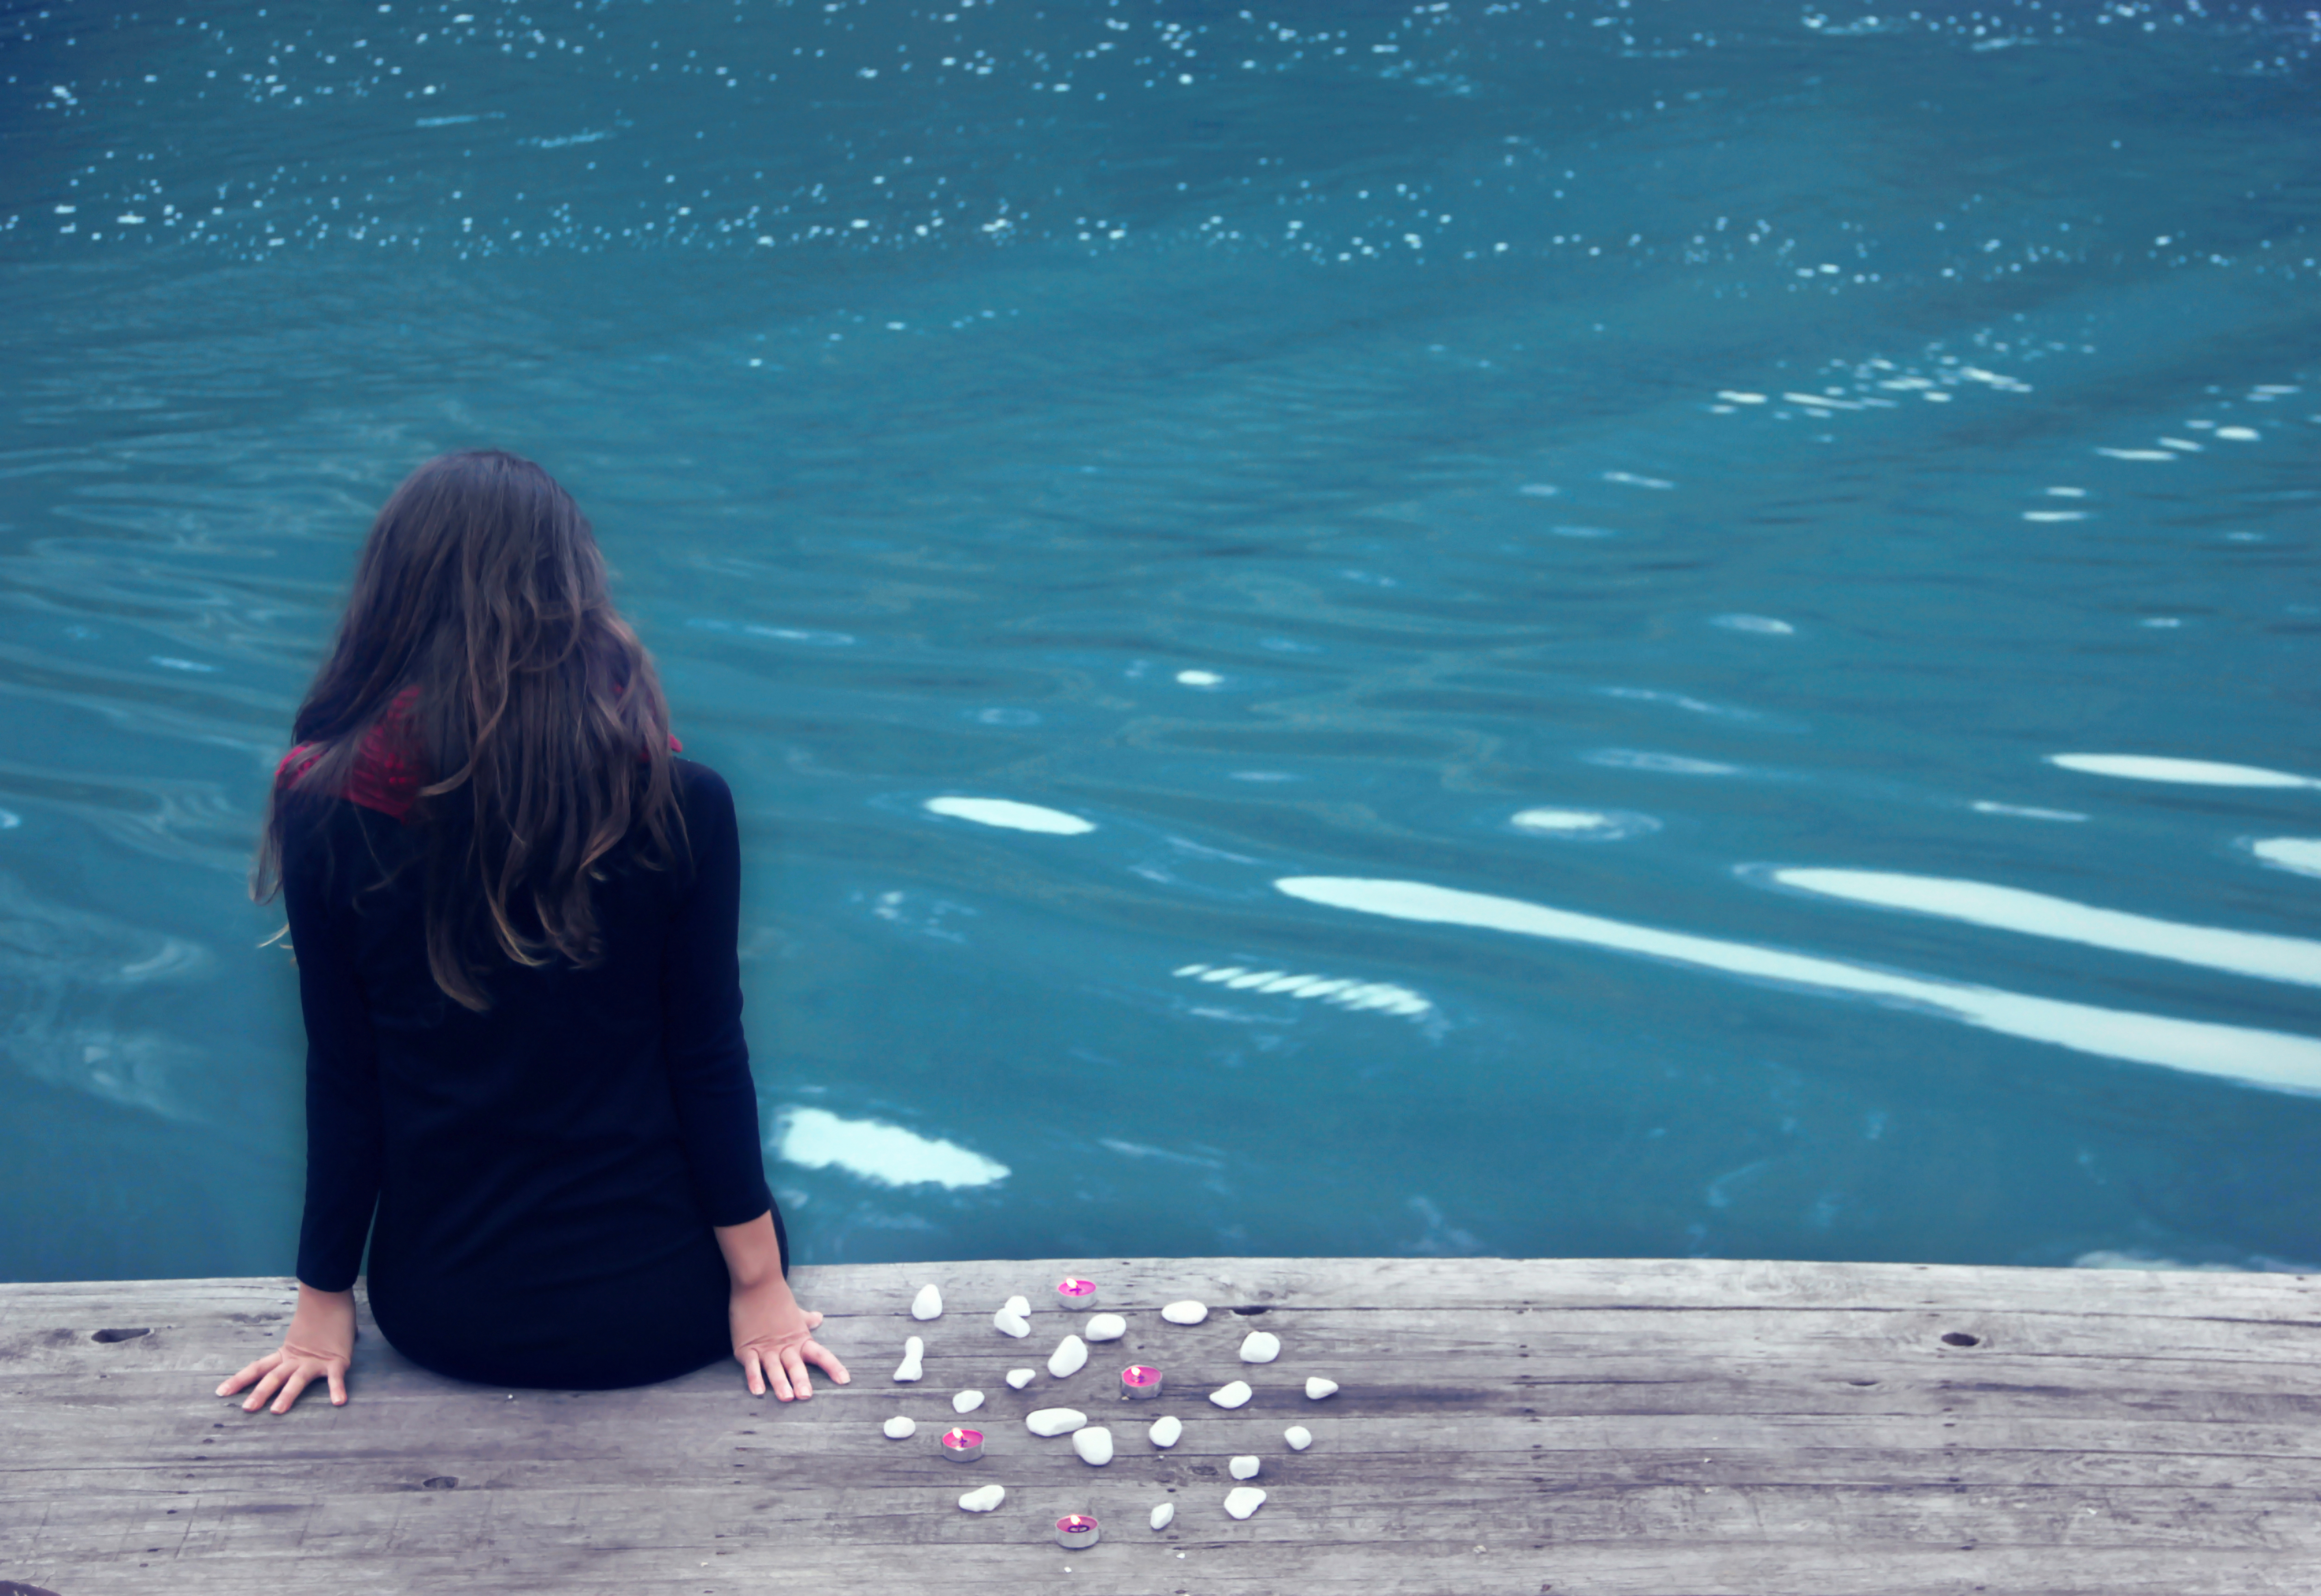 Relaxation, Silence, Person, Photographing, Pier, HQ Photo